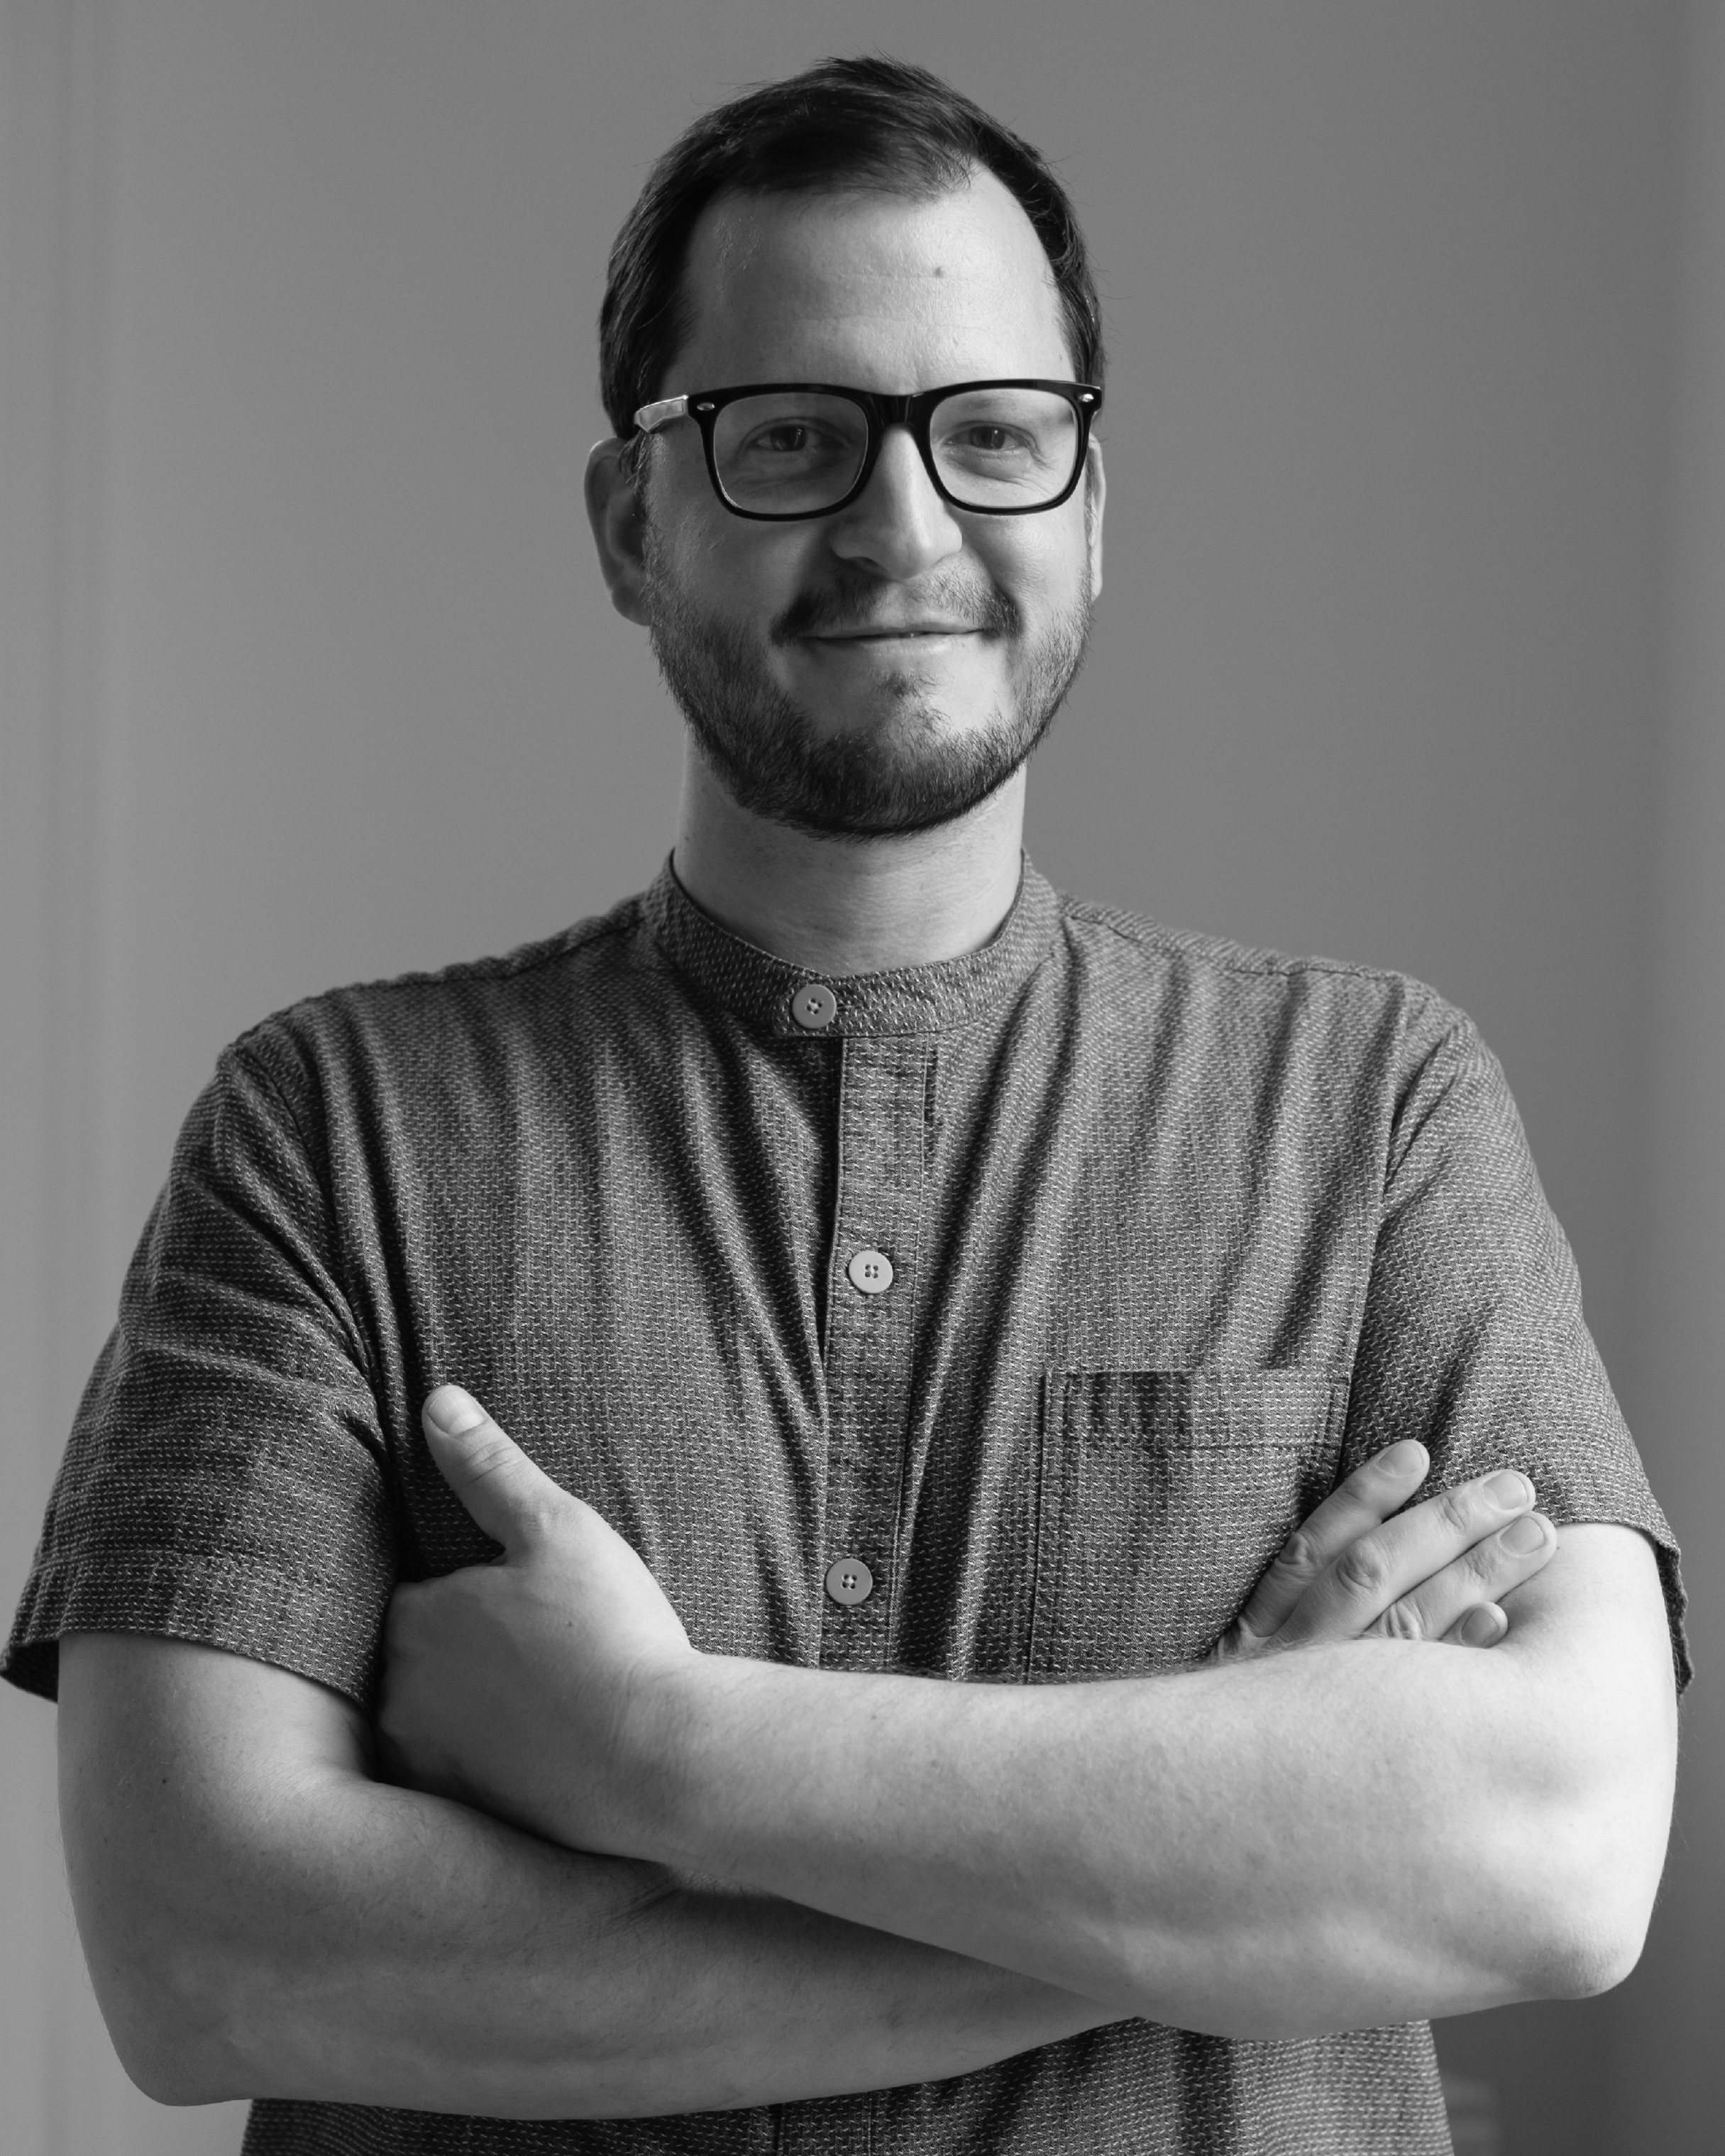 Chef Christian Irabién - Born and raised in Chihuahua, Mexico Chef Christian is an artist, activist, and long-time resident of the DC area.